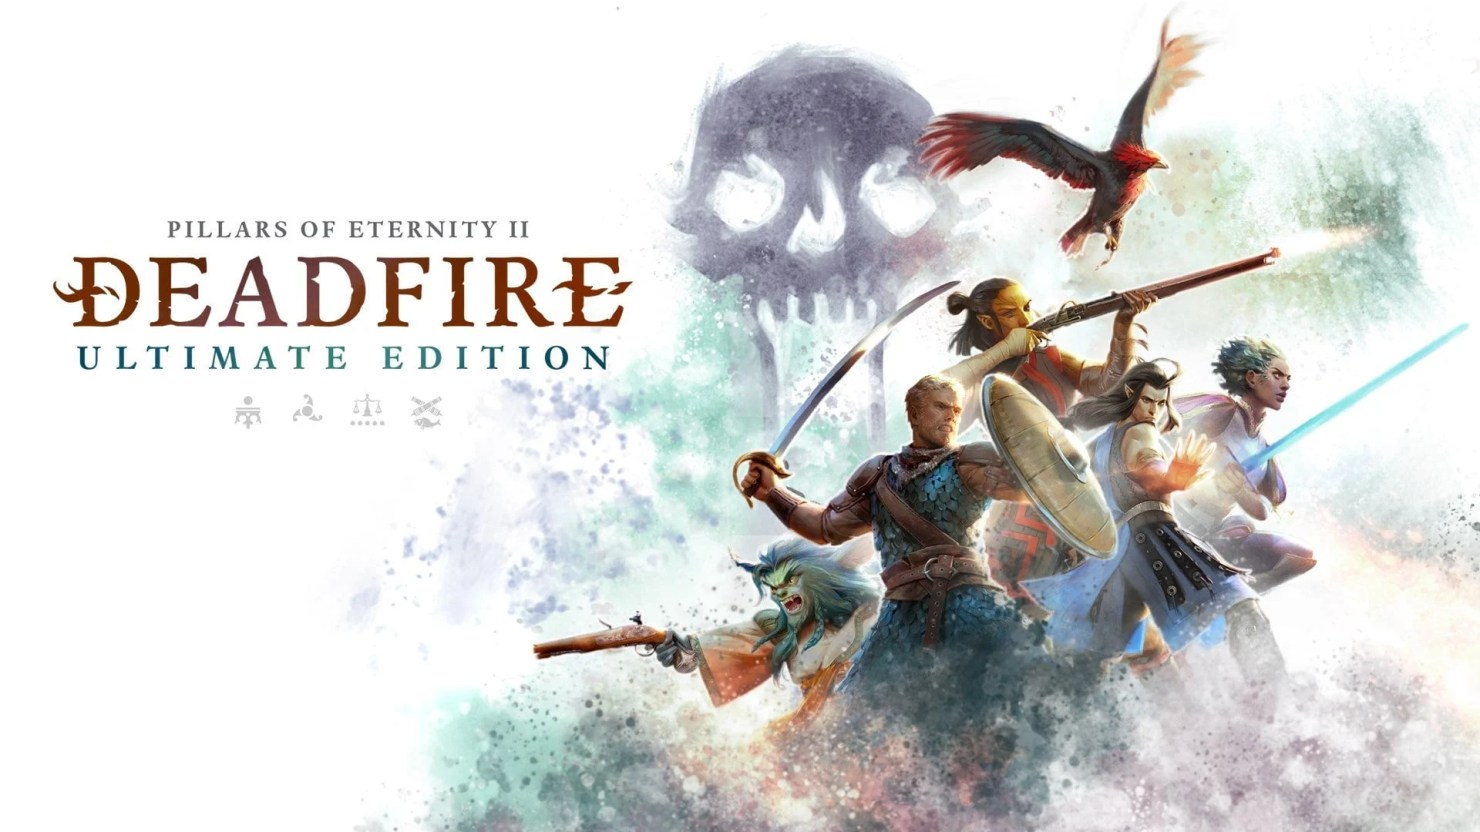 Logros de Pillars Of Eternity II: Deadfire